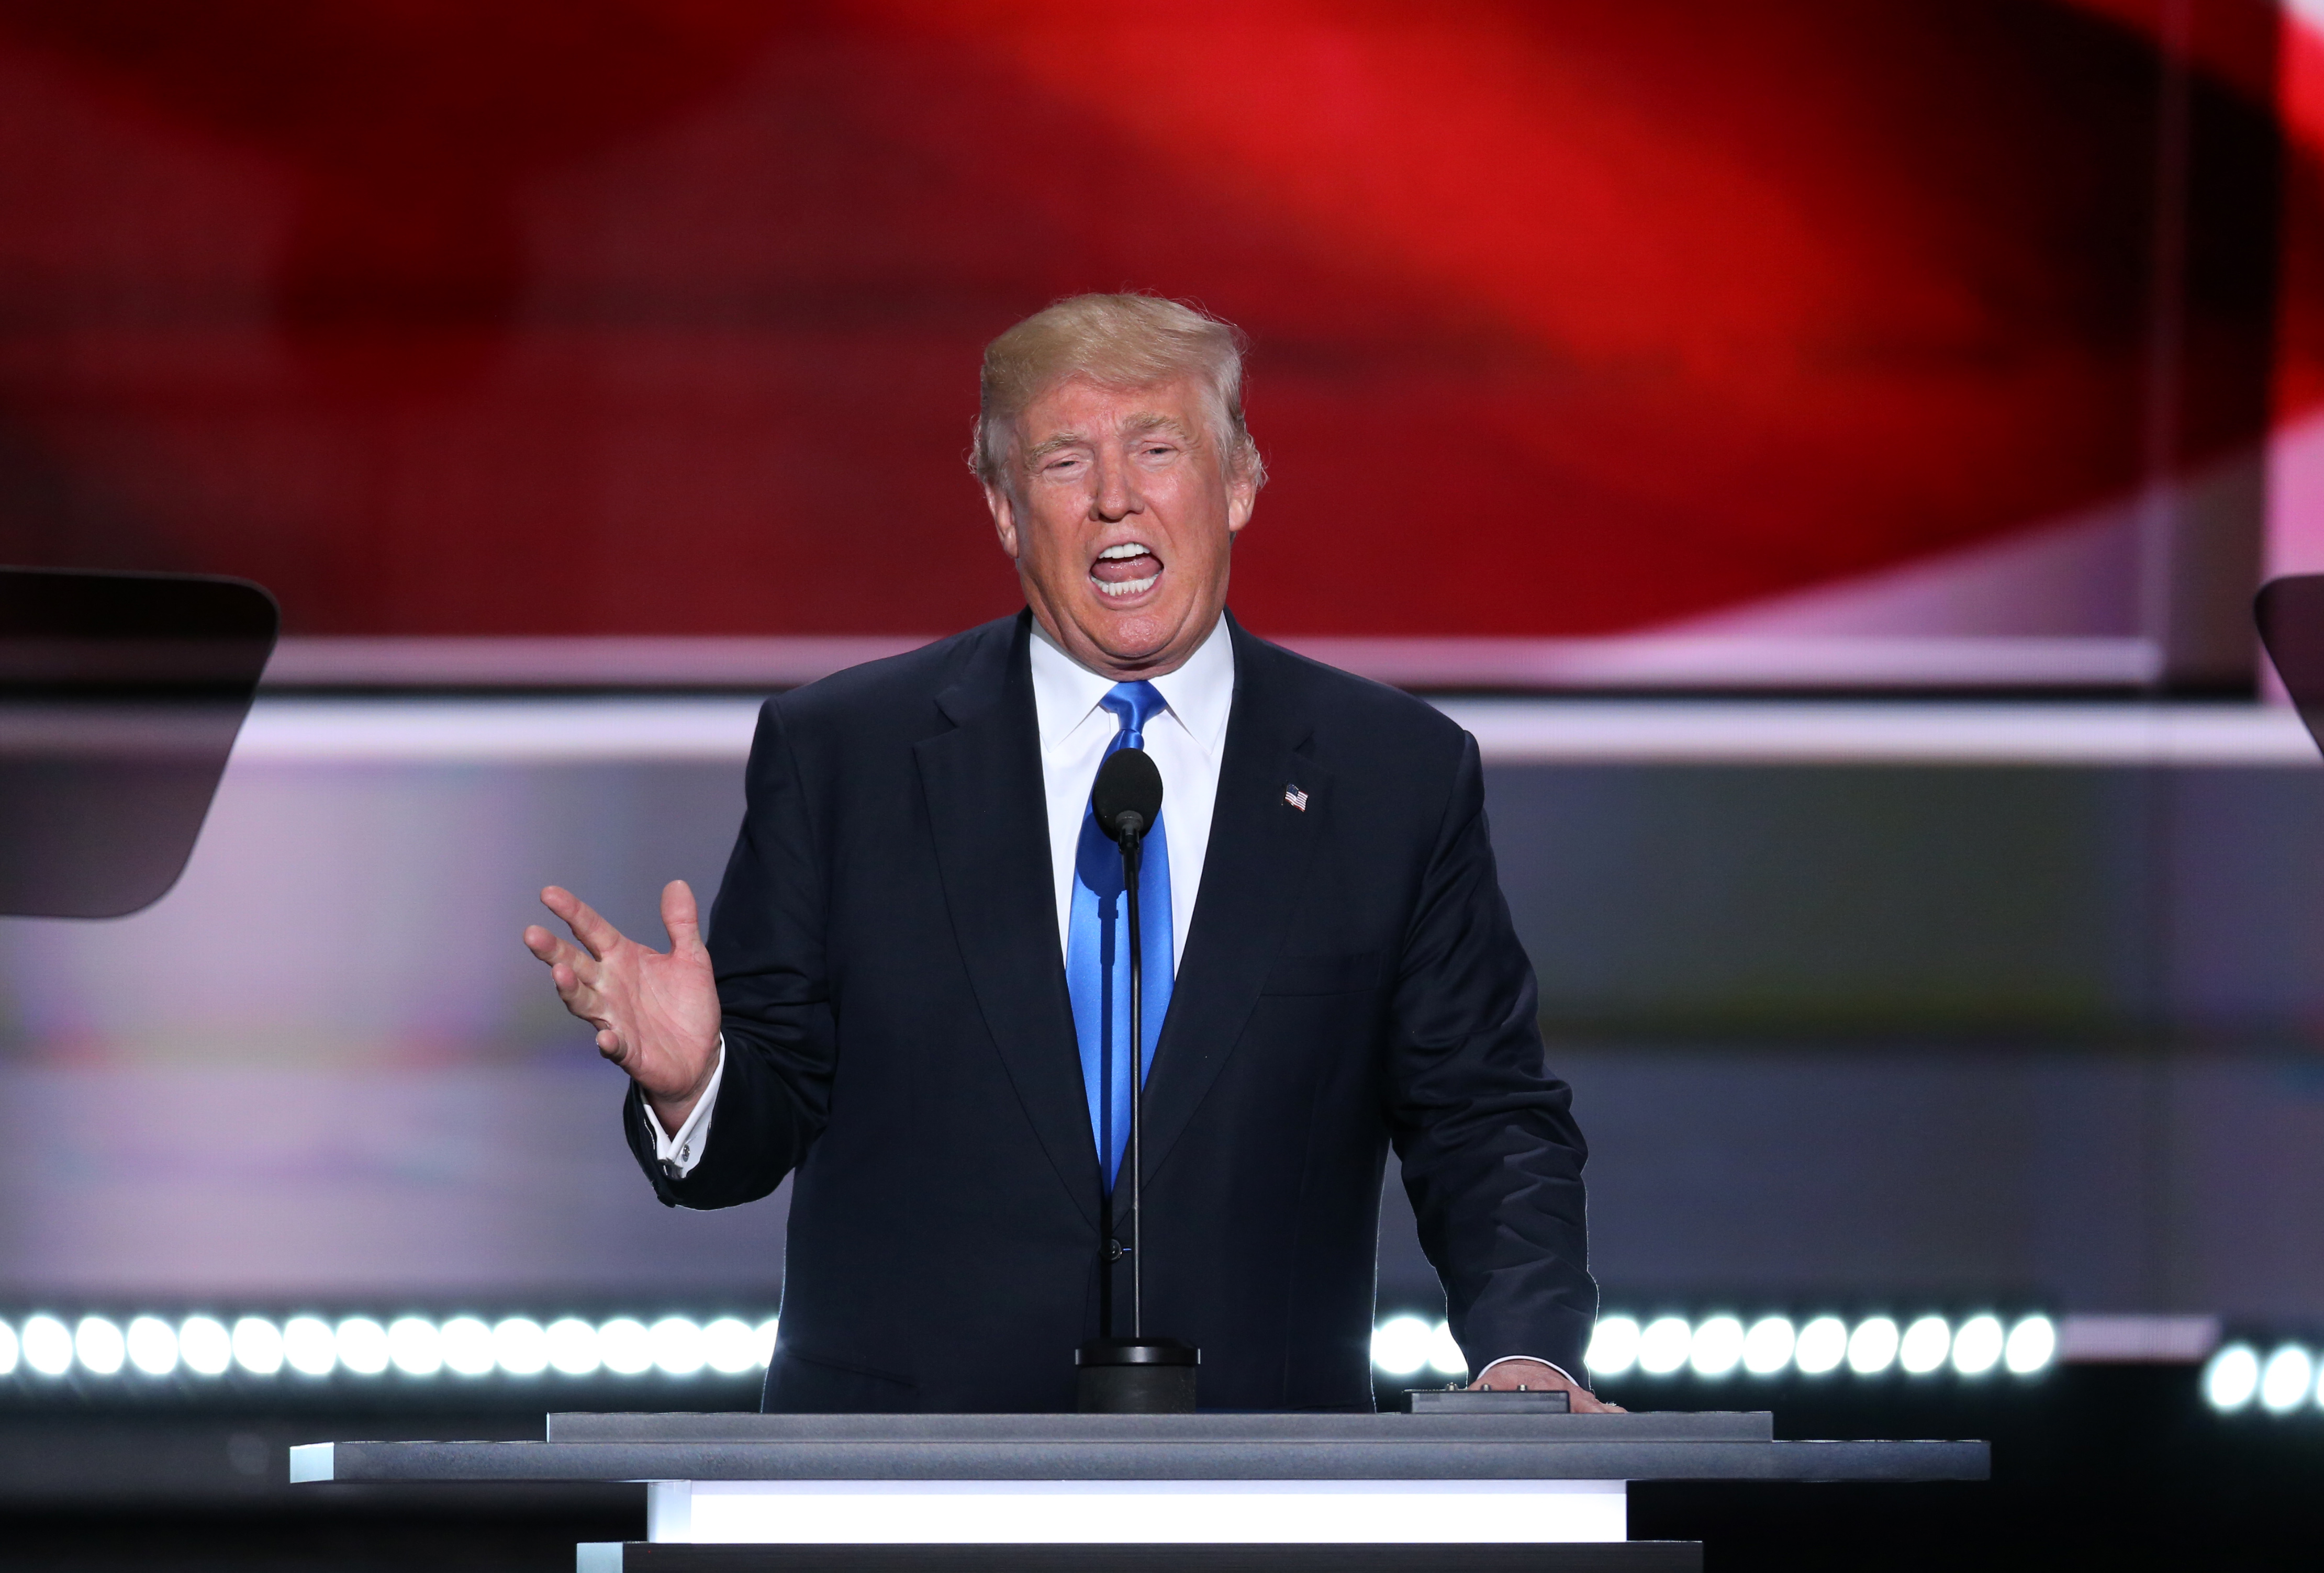 Donald Trump, presumptive 2016 Republican presidential nominee, speaks during the Republican National Convention (RNC) in Cleveland, Ohio, on July 18, 2016.